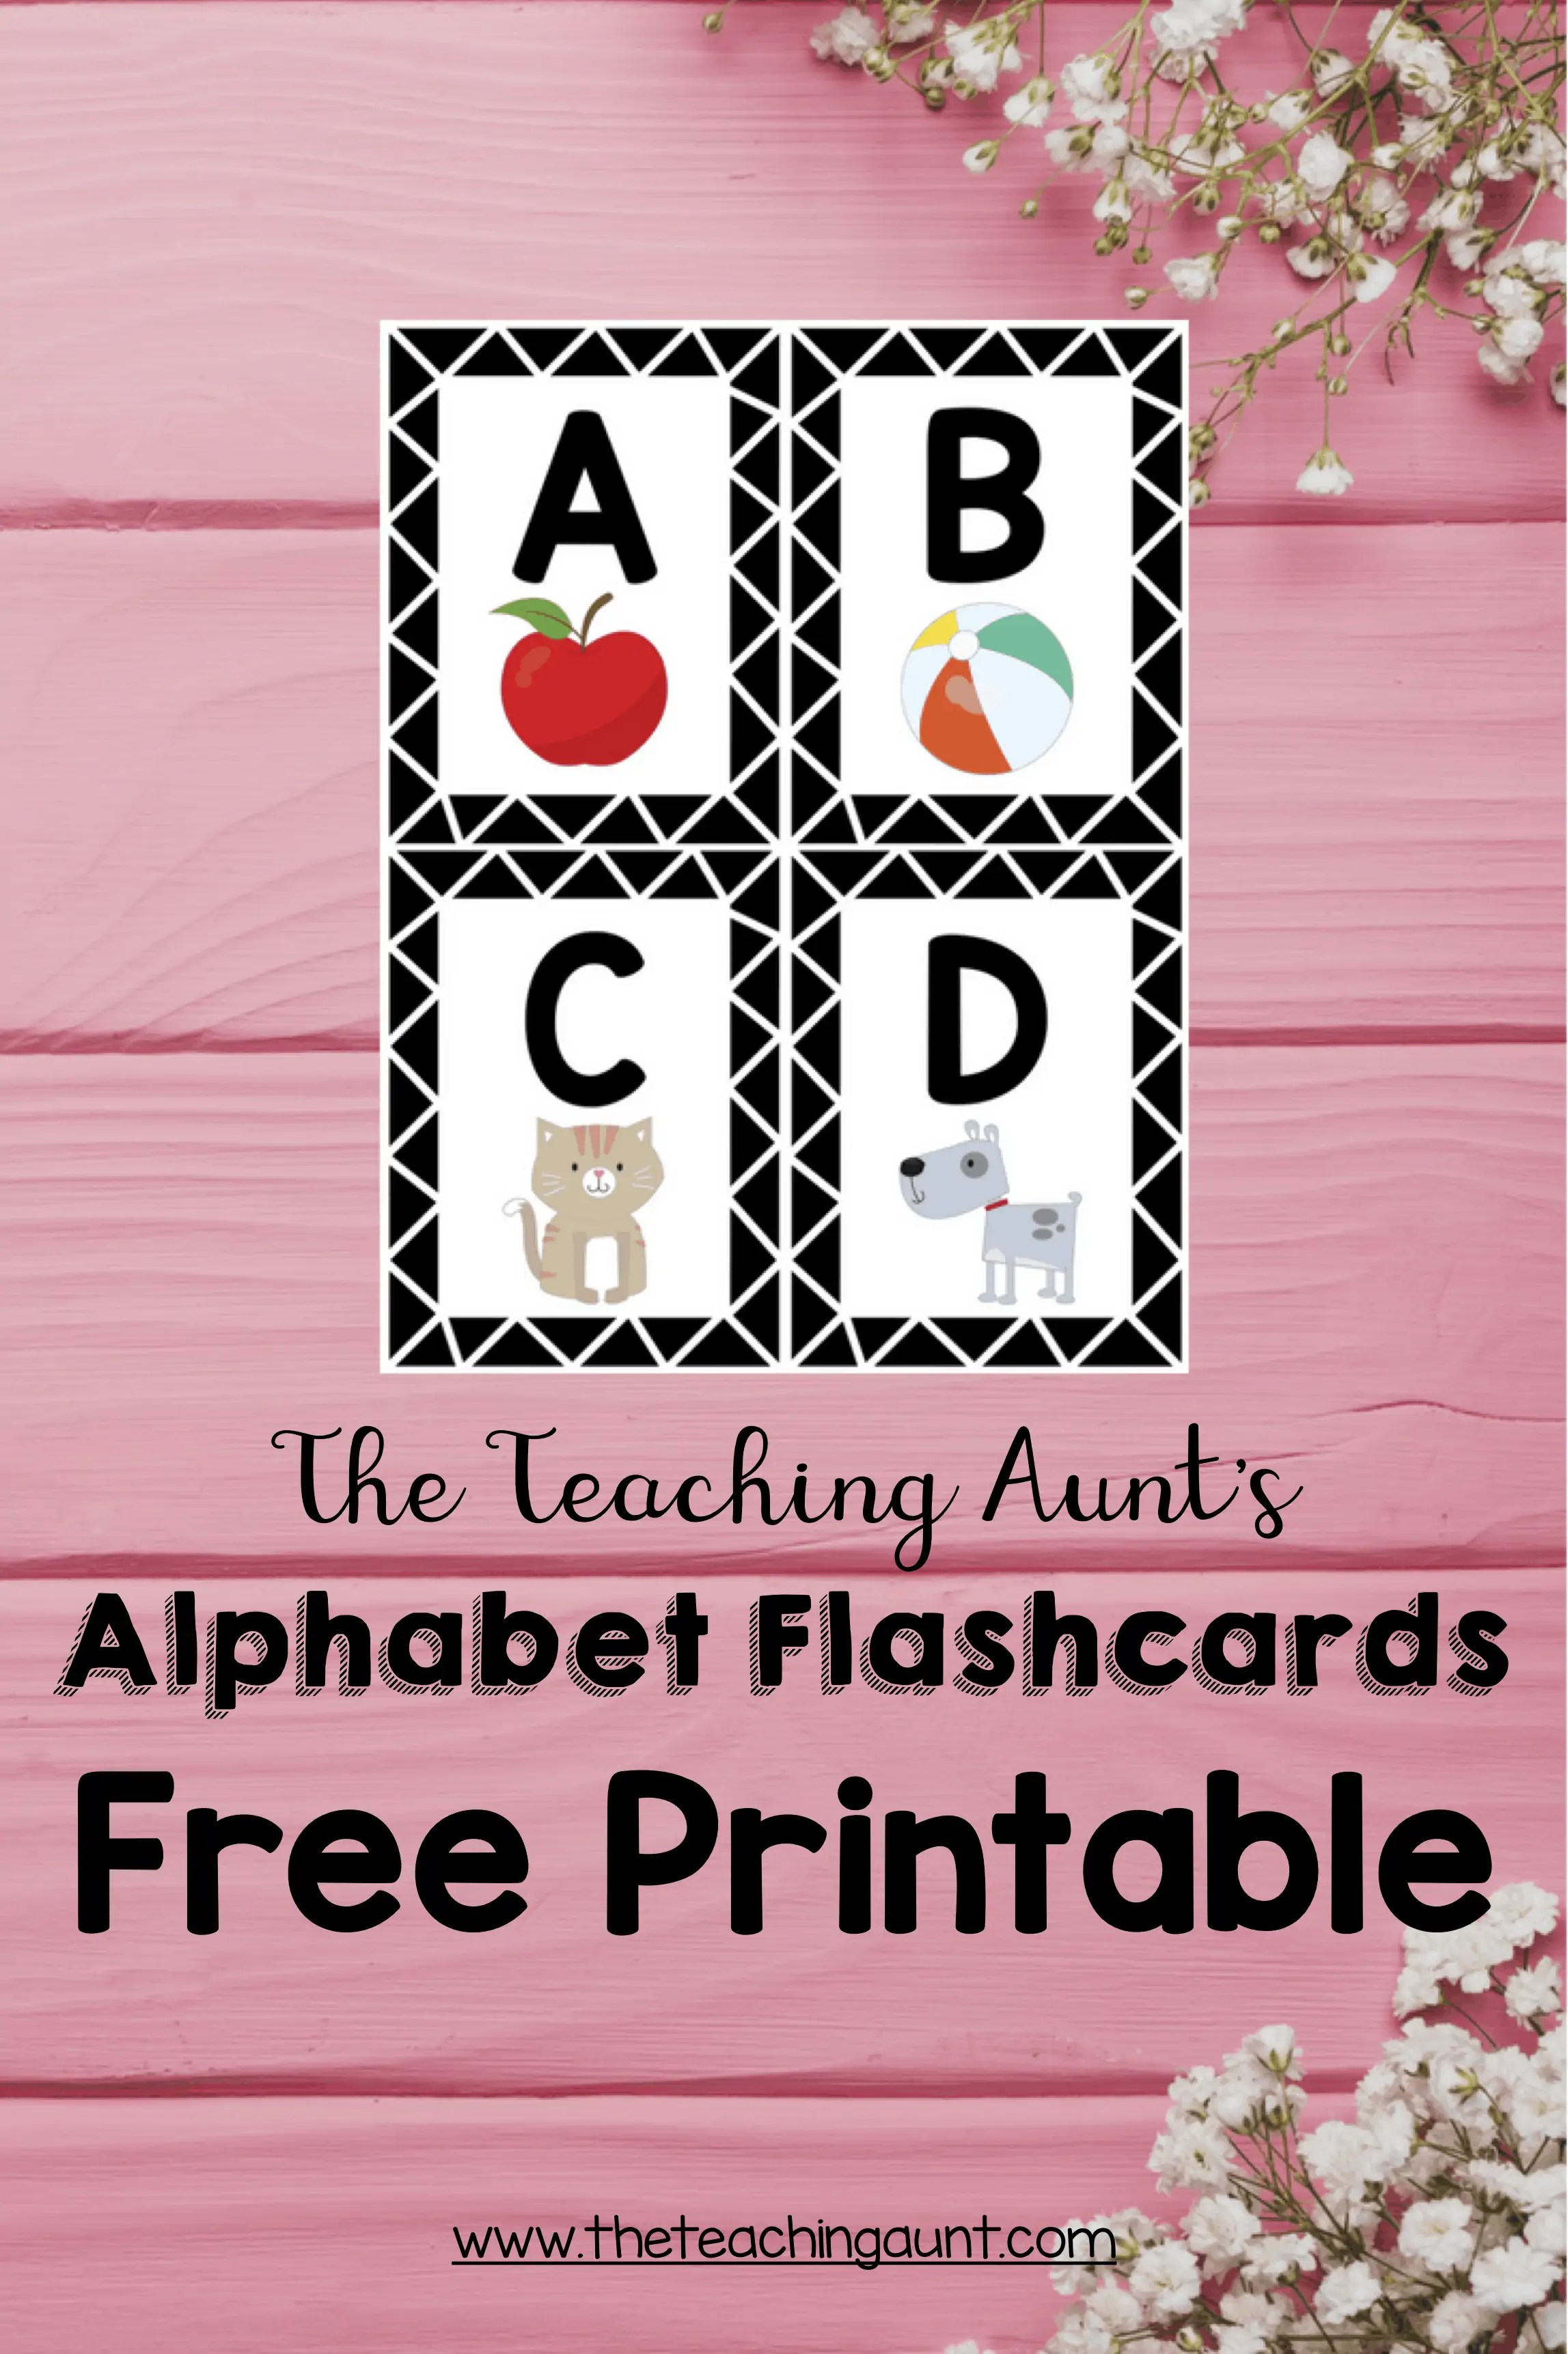 photograph relating to Printable Font named Alphabet Flashcards No cost Printable - The Training Aunt